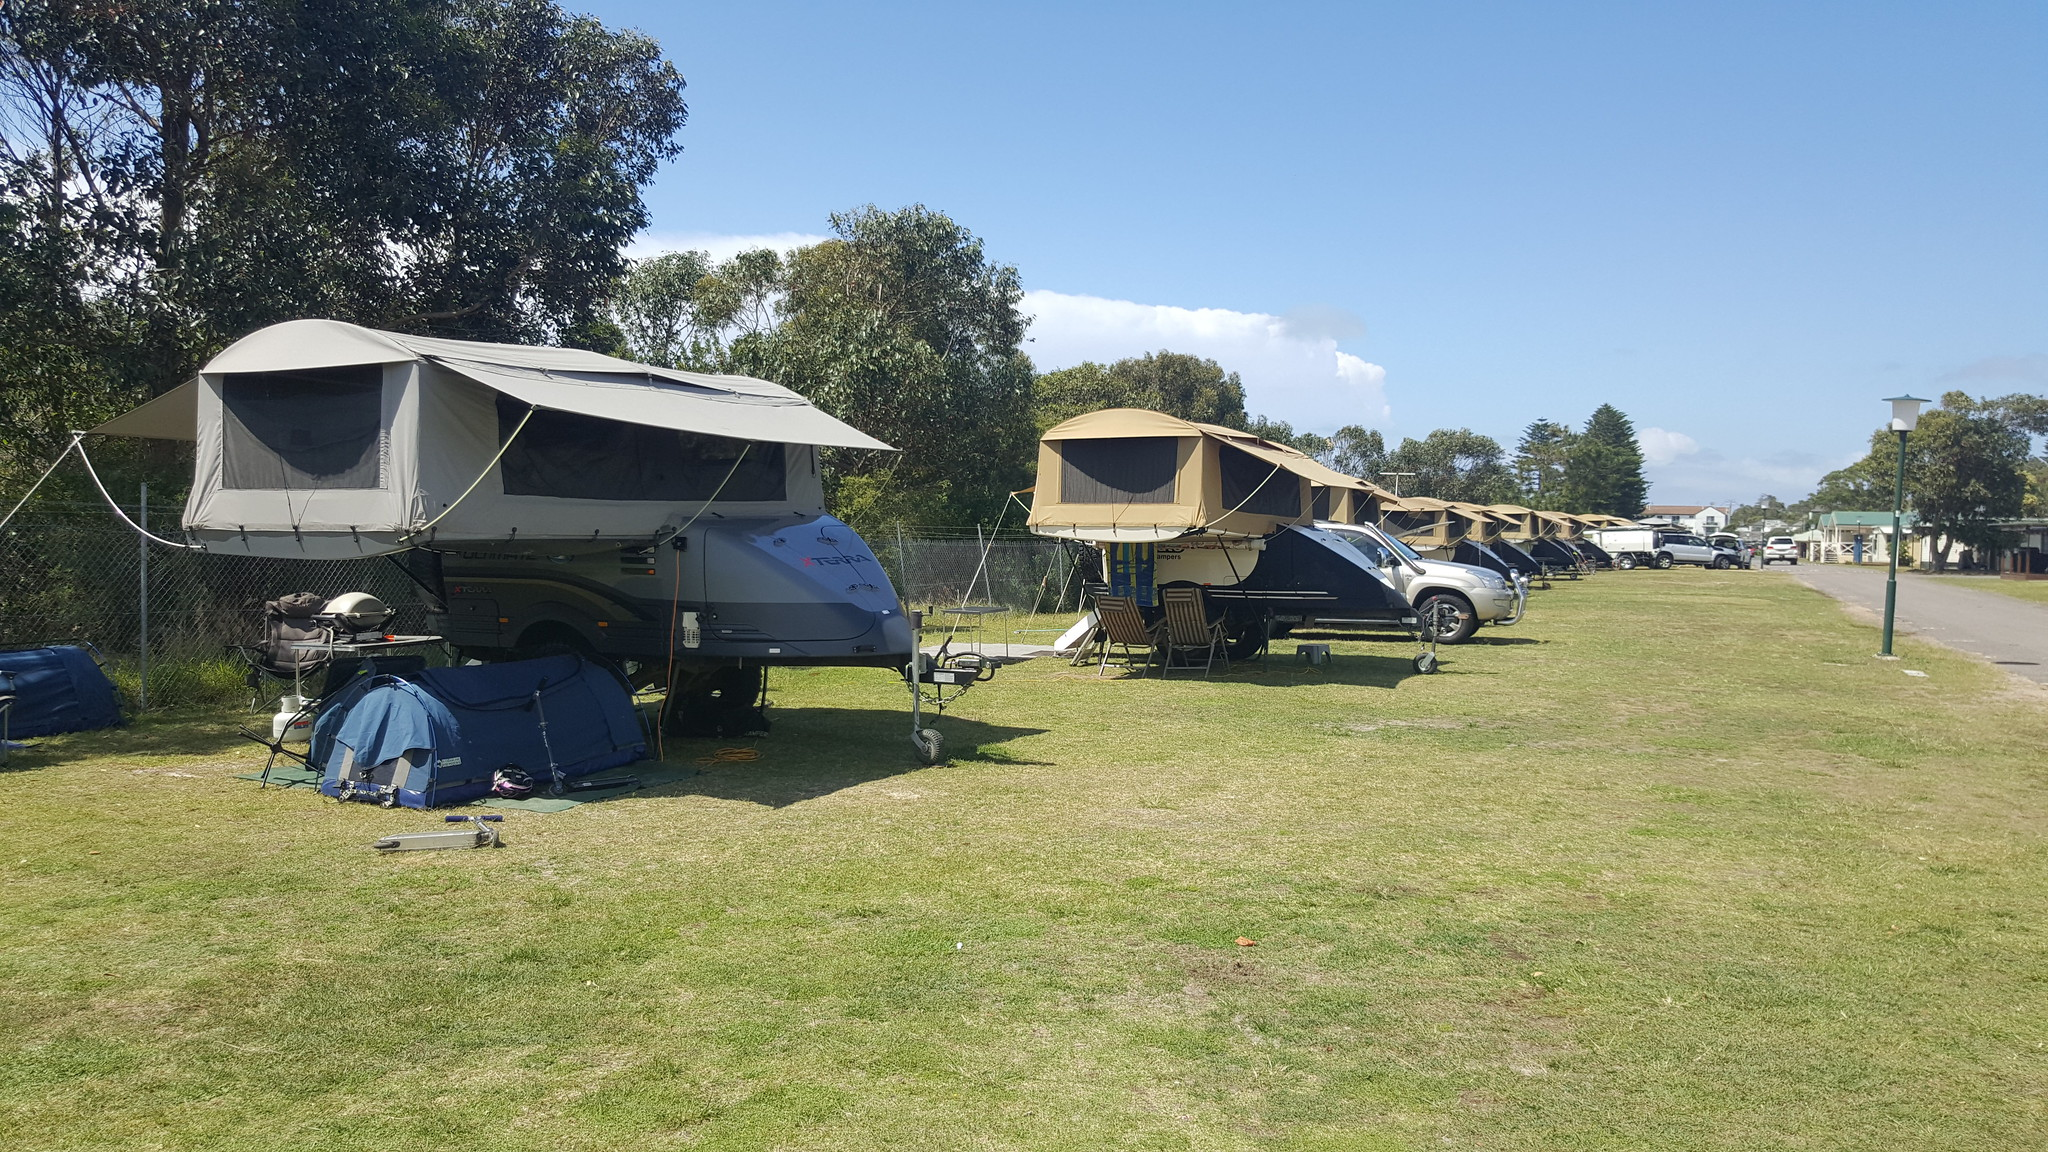 Our camper, in a row of Ultimates as far as the eye can see. We were one of 36 over the weekend.